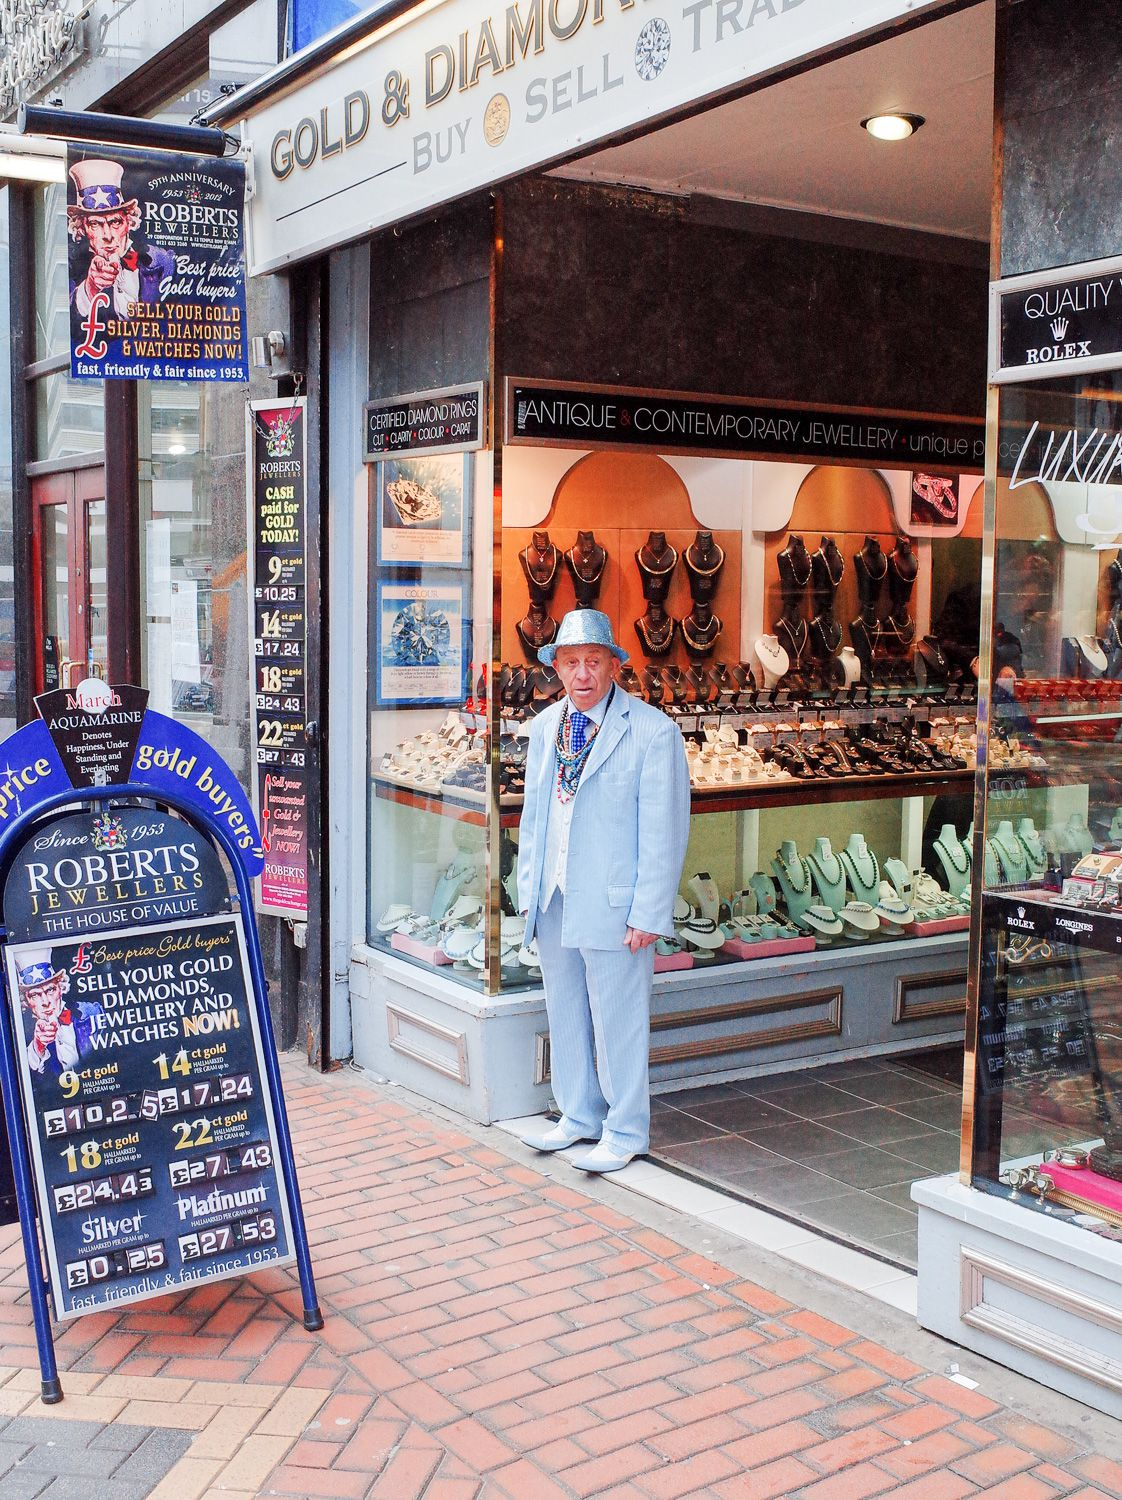 Man-in-blue-suit-outside-jewelry-store-R0047656_Copyright-Ant_Tran.jpg